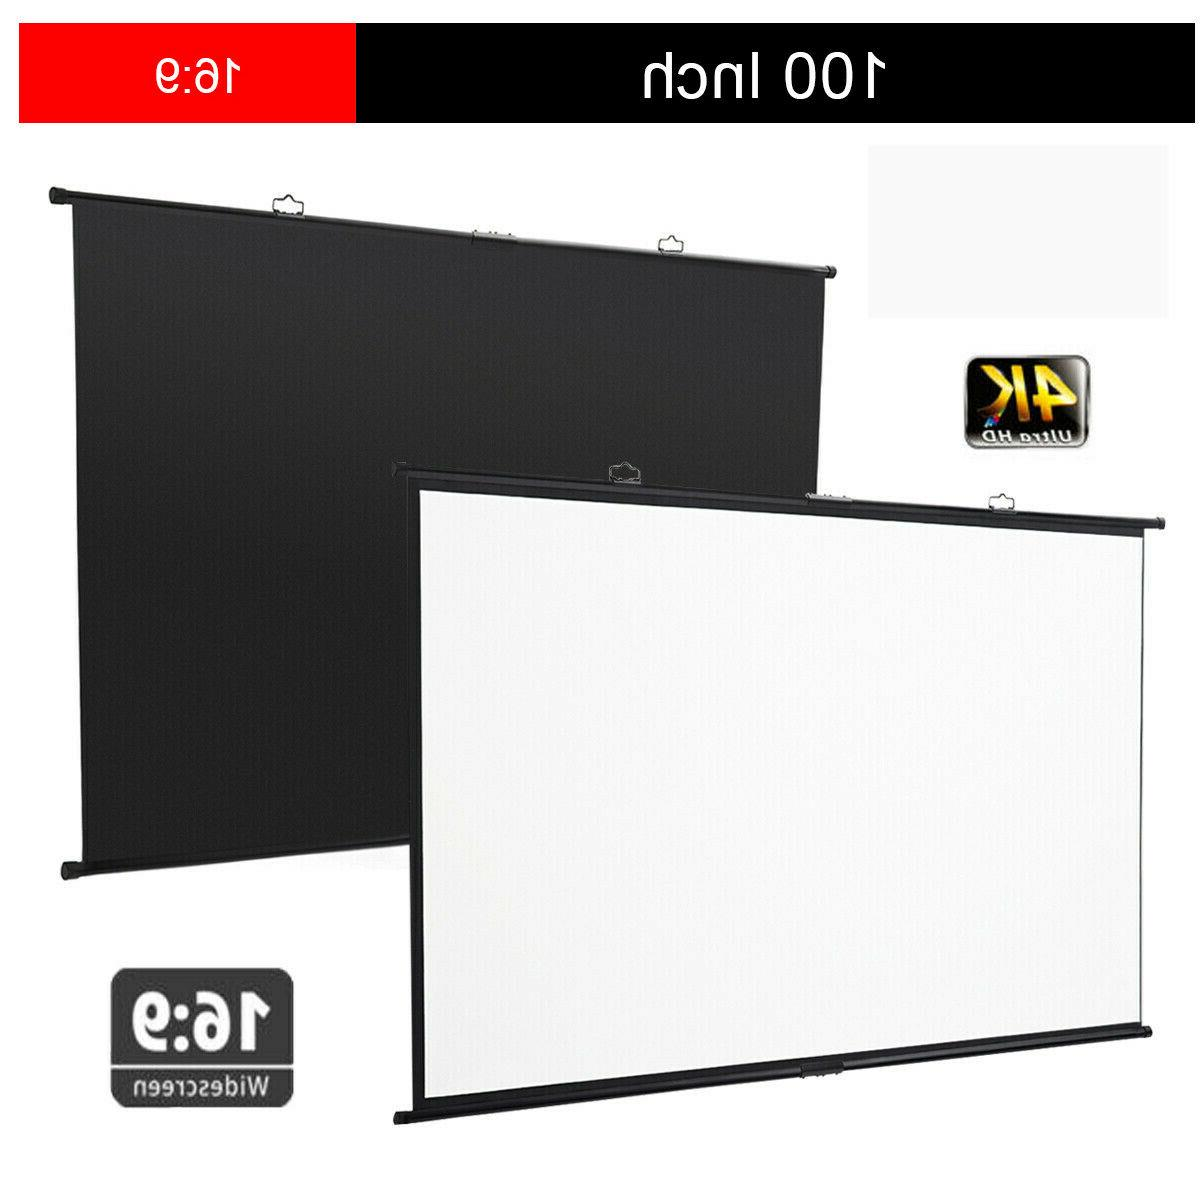 "Excelvan 100"" Fast Wall-mounted Projector Screen Hanging"